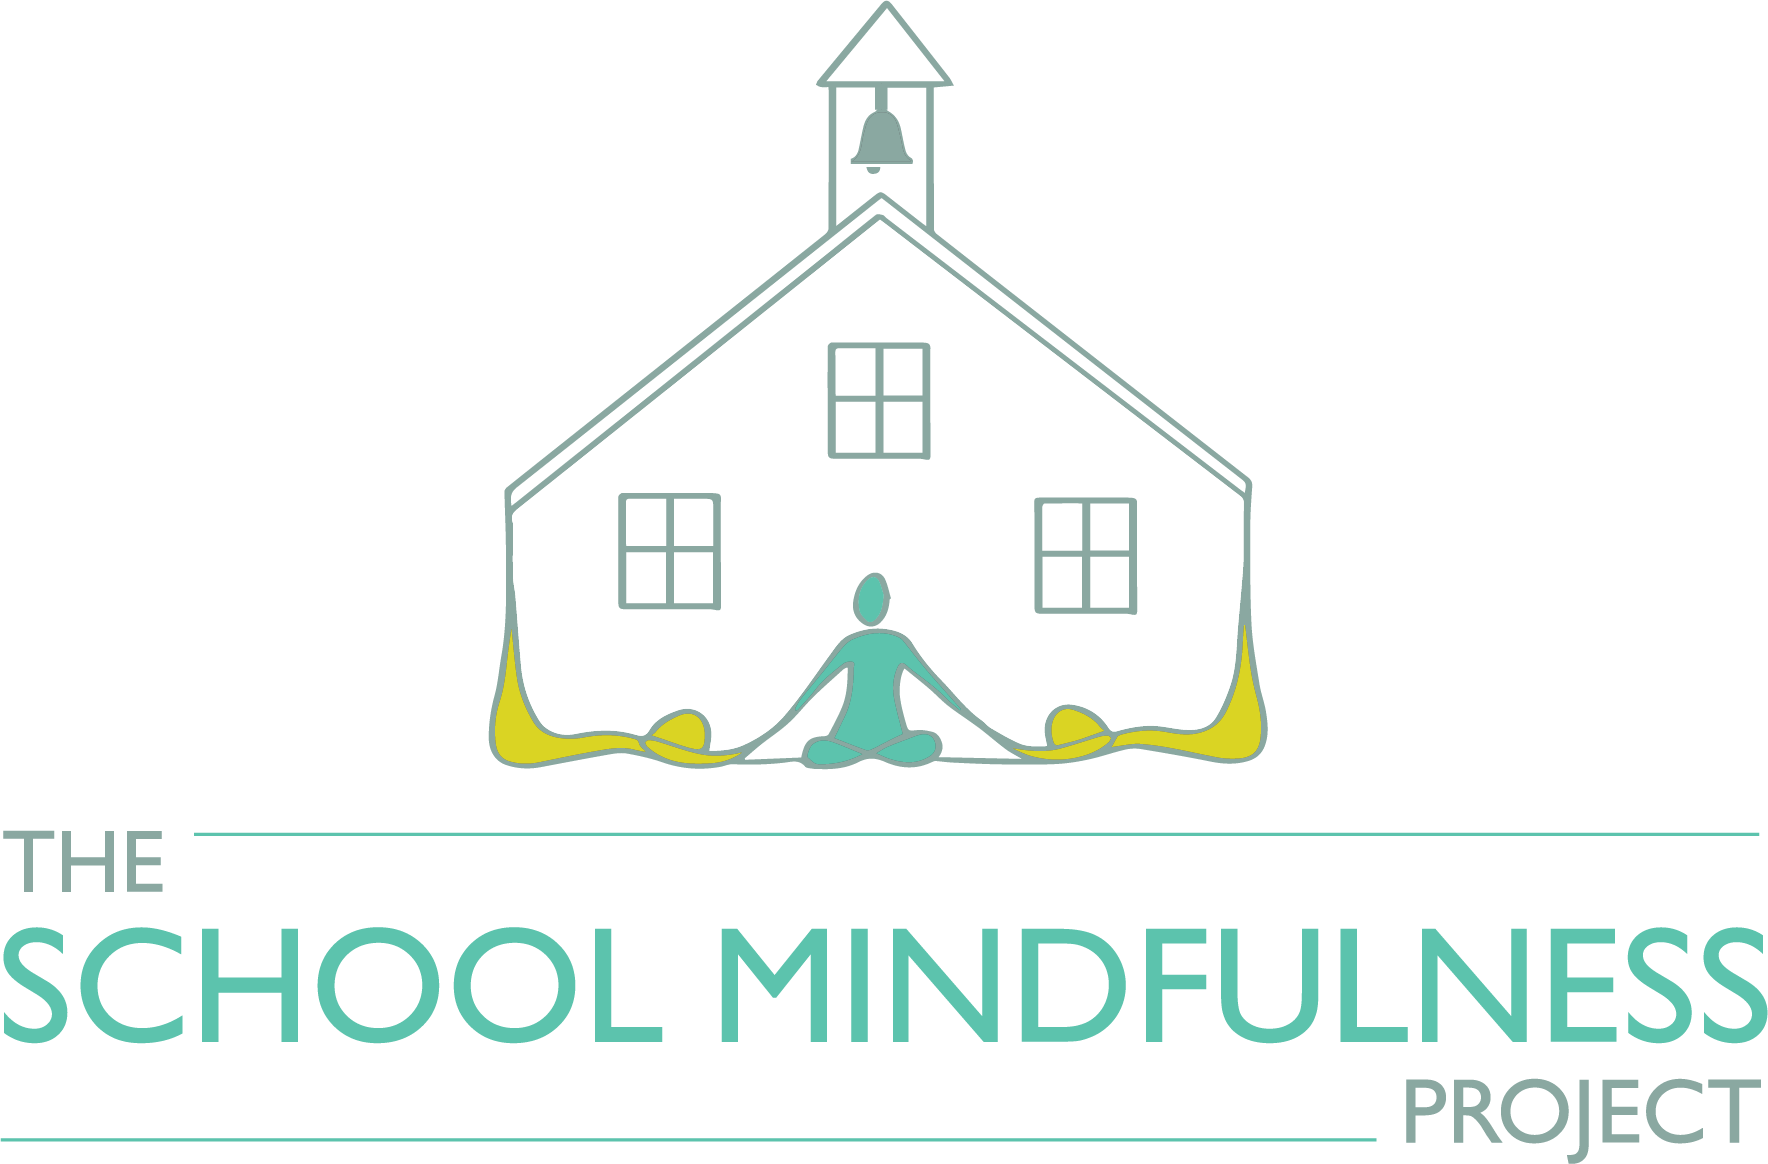 The School Mindfulness Project - School Programs for K-12 in